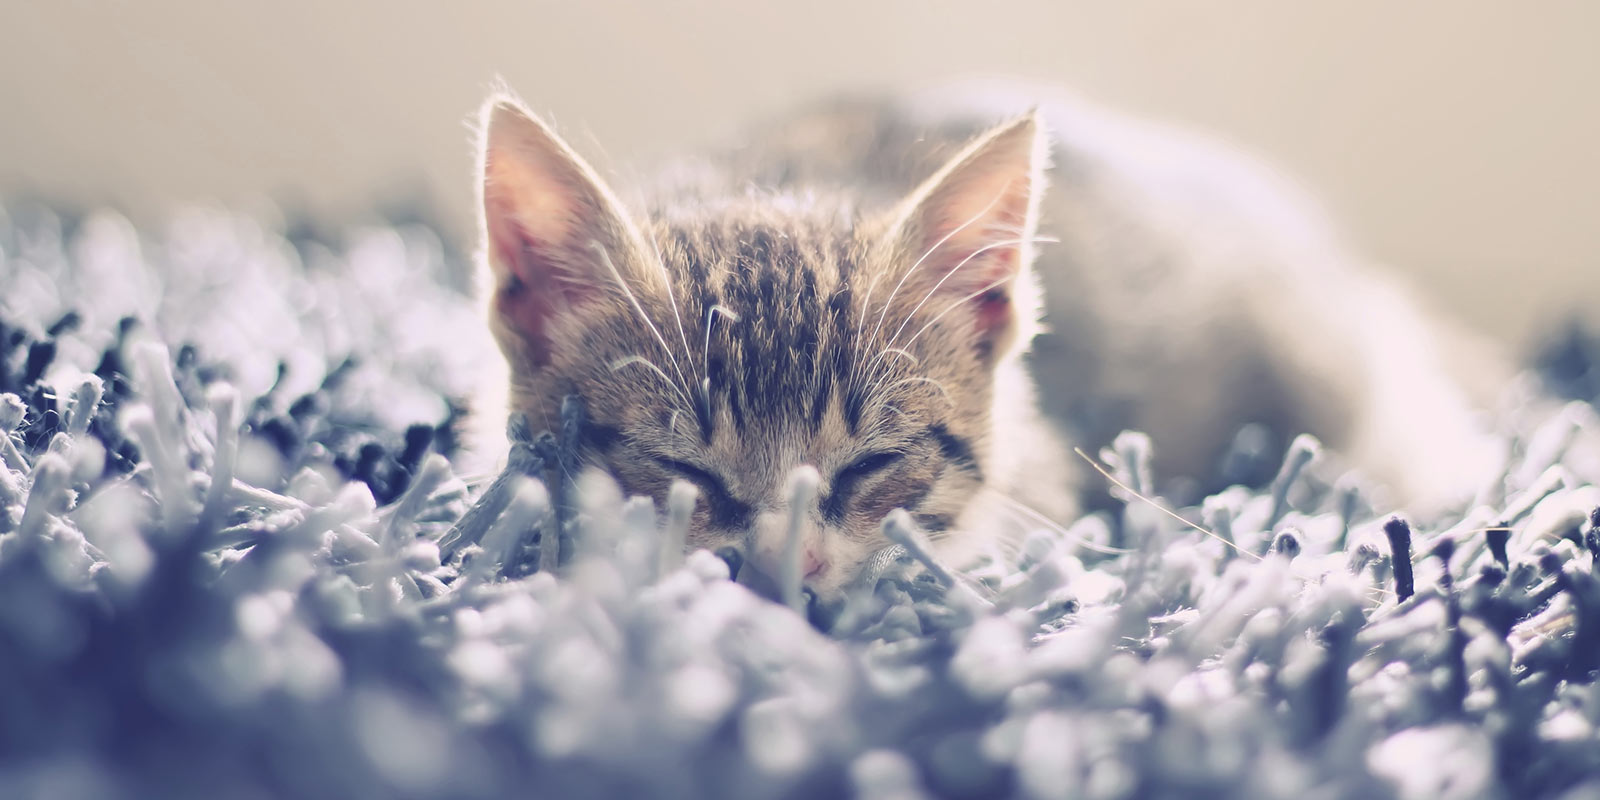 Kitten sleeping in shag carpet.